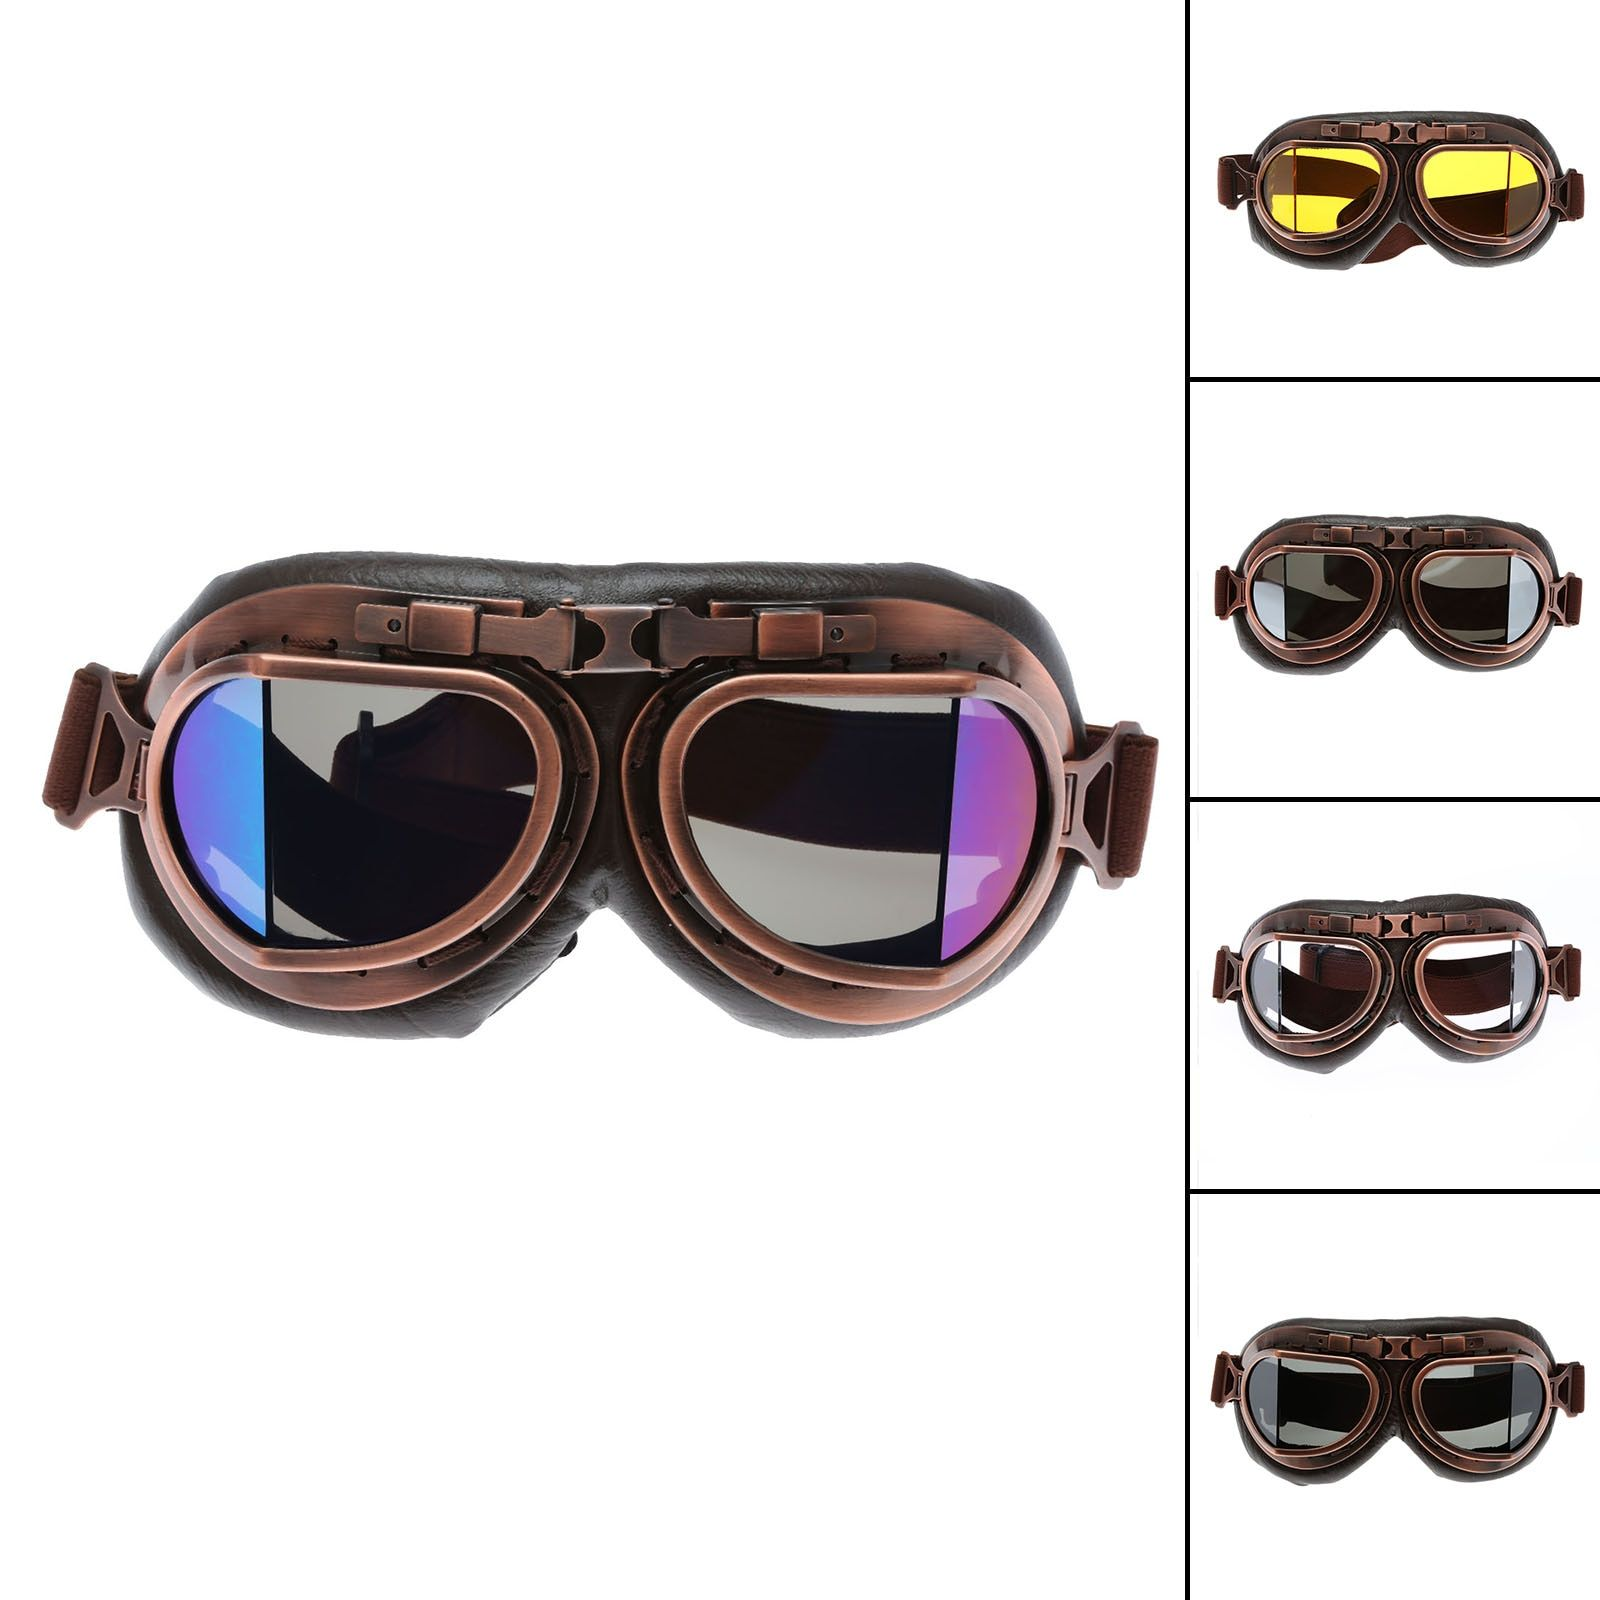 Motorcycle Goggles Glasses Vintage Motocross Classic Goggles Retro Aviator Pilot <font><b>Cruiser</b></font> Steampunk ATV Bike UV Protection Copper